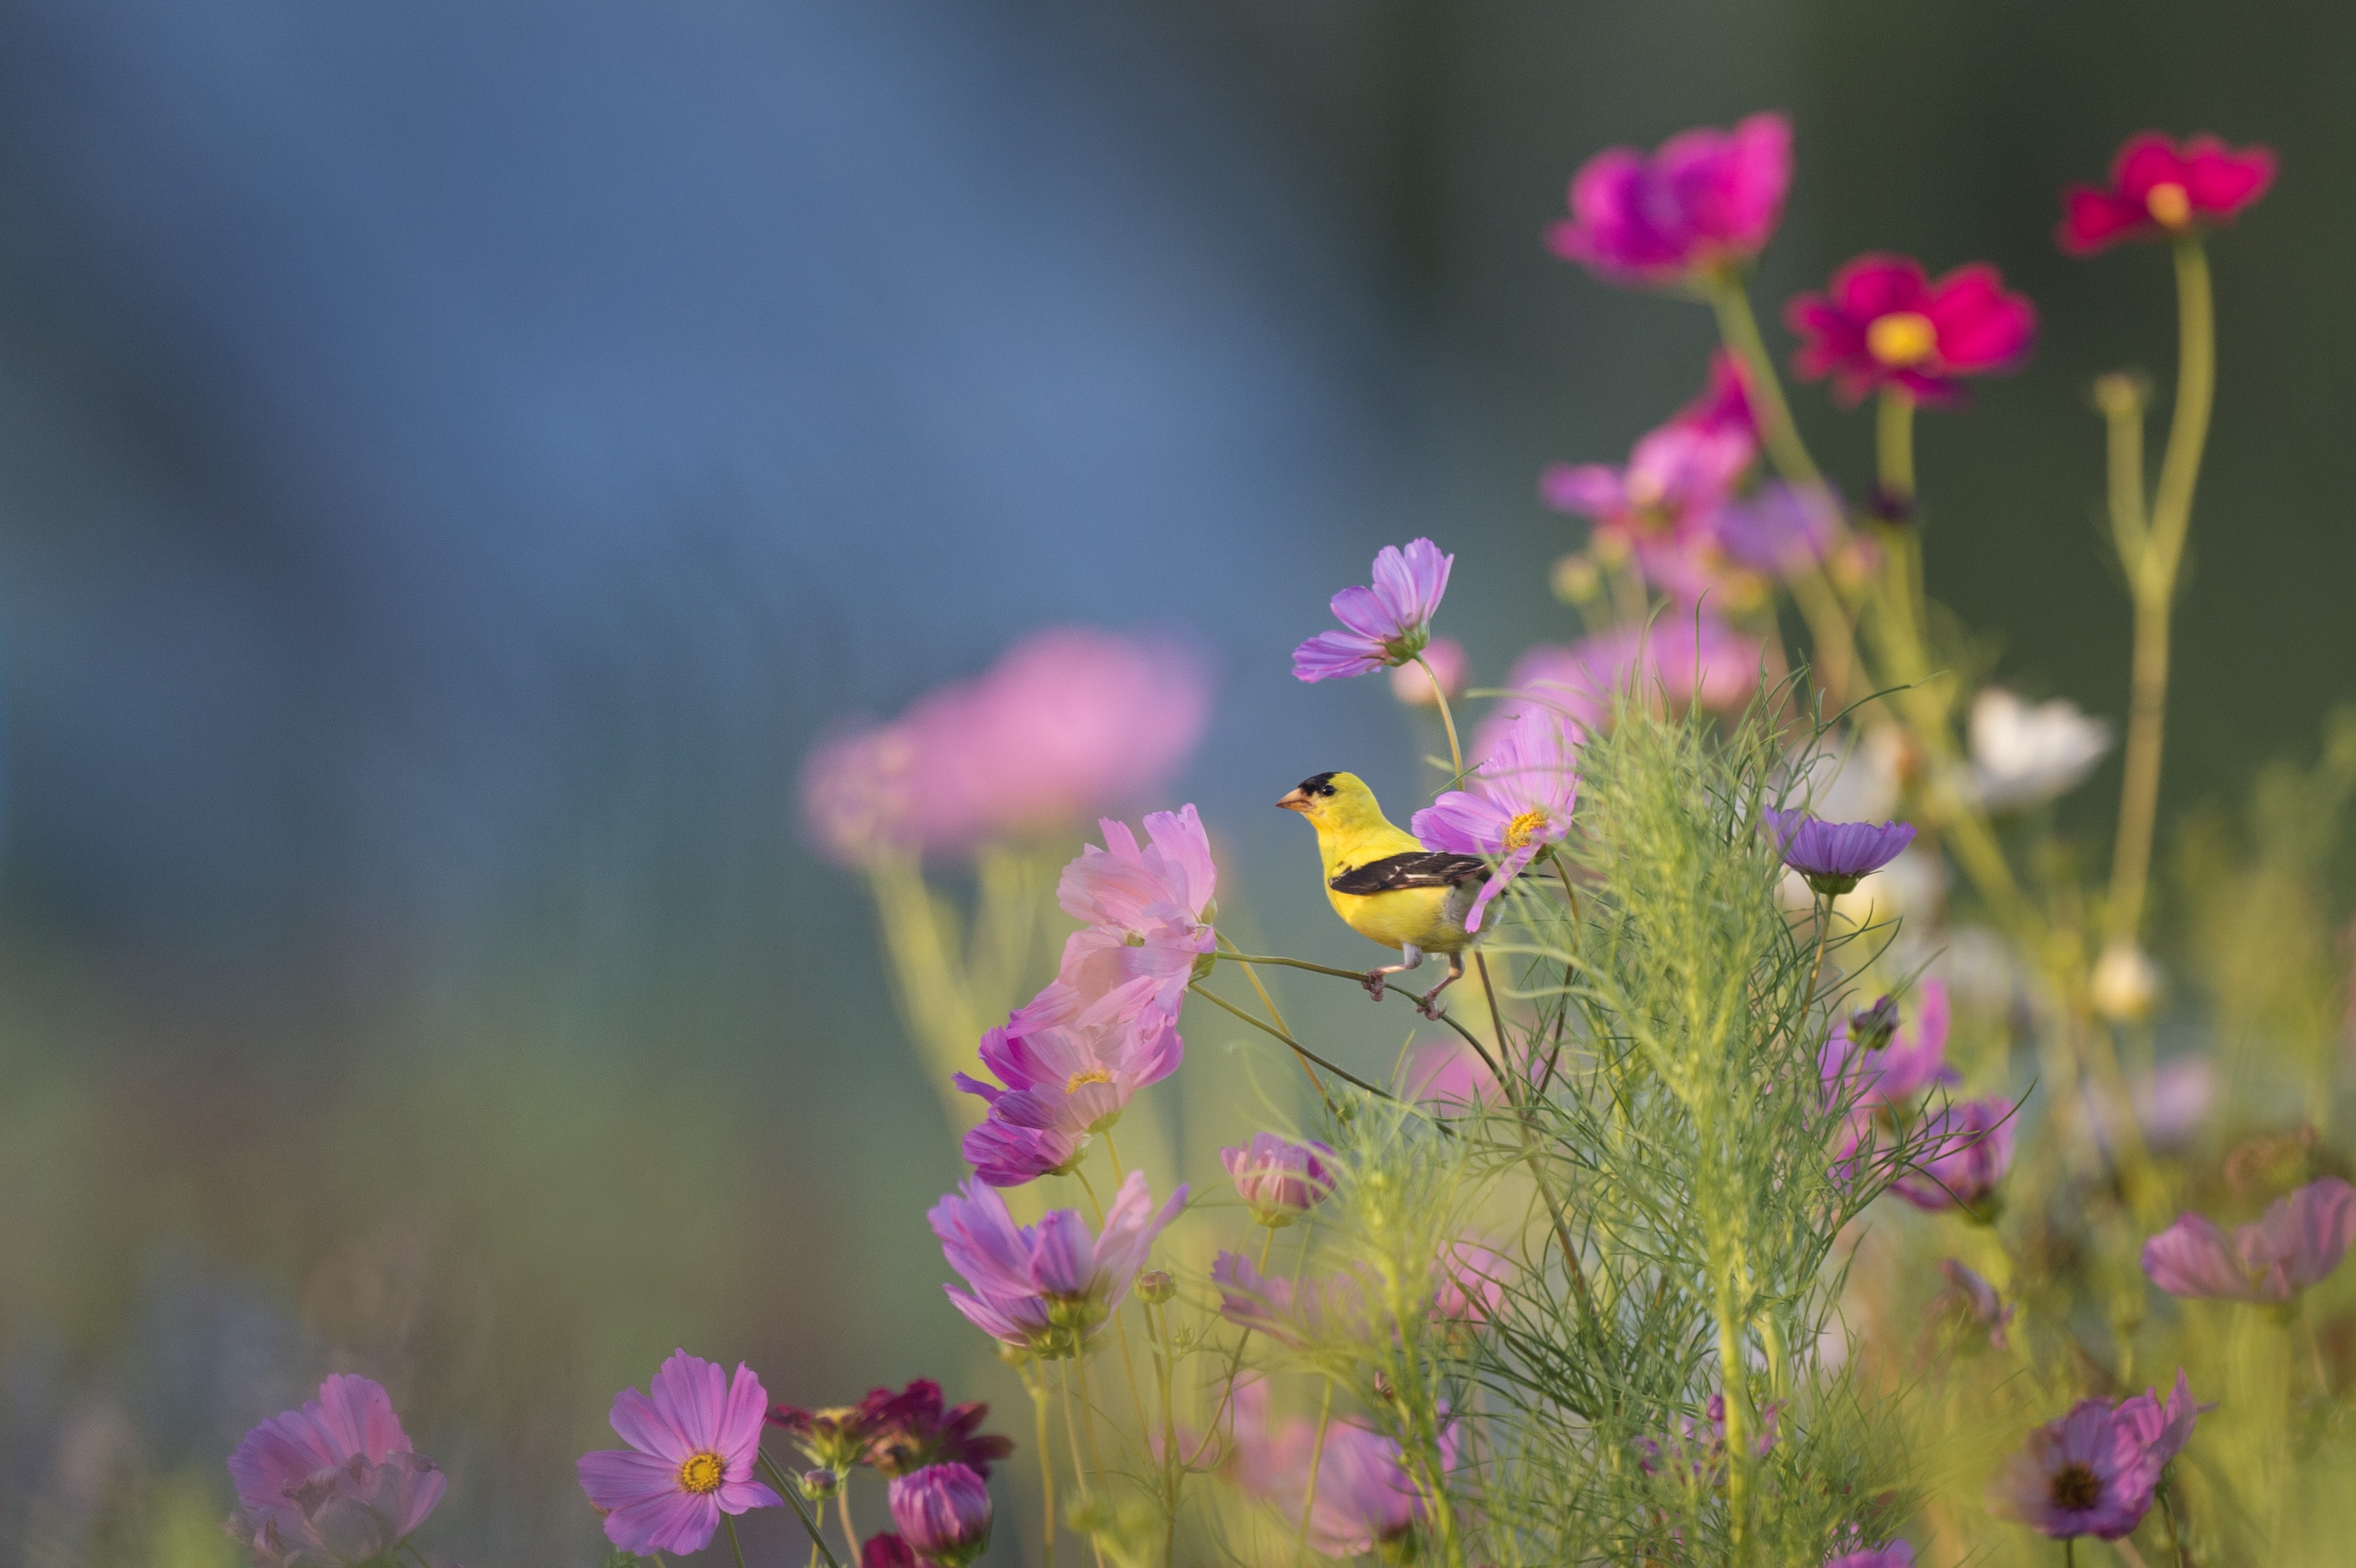 A small yellow bird perched on a stem of a pink flower